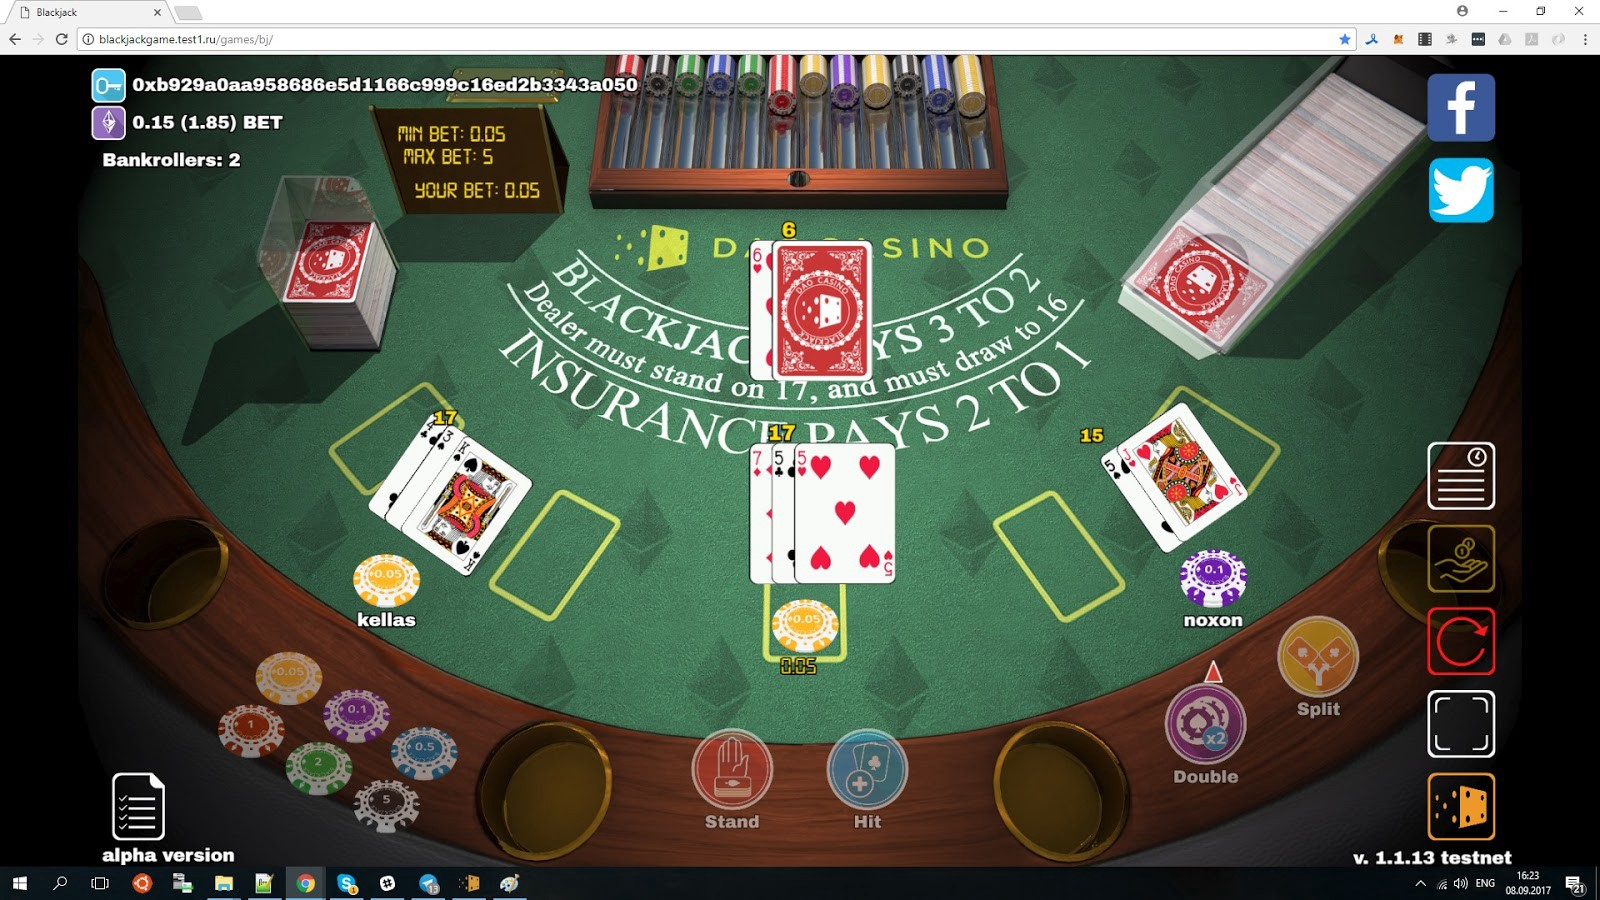 Real time black jack gambling sites horse shoe casino in council bluffs iowa